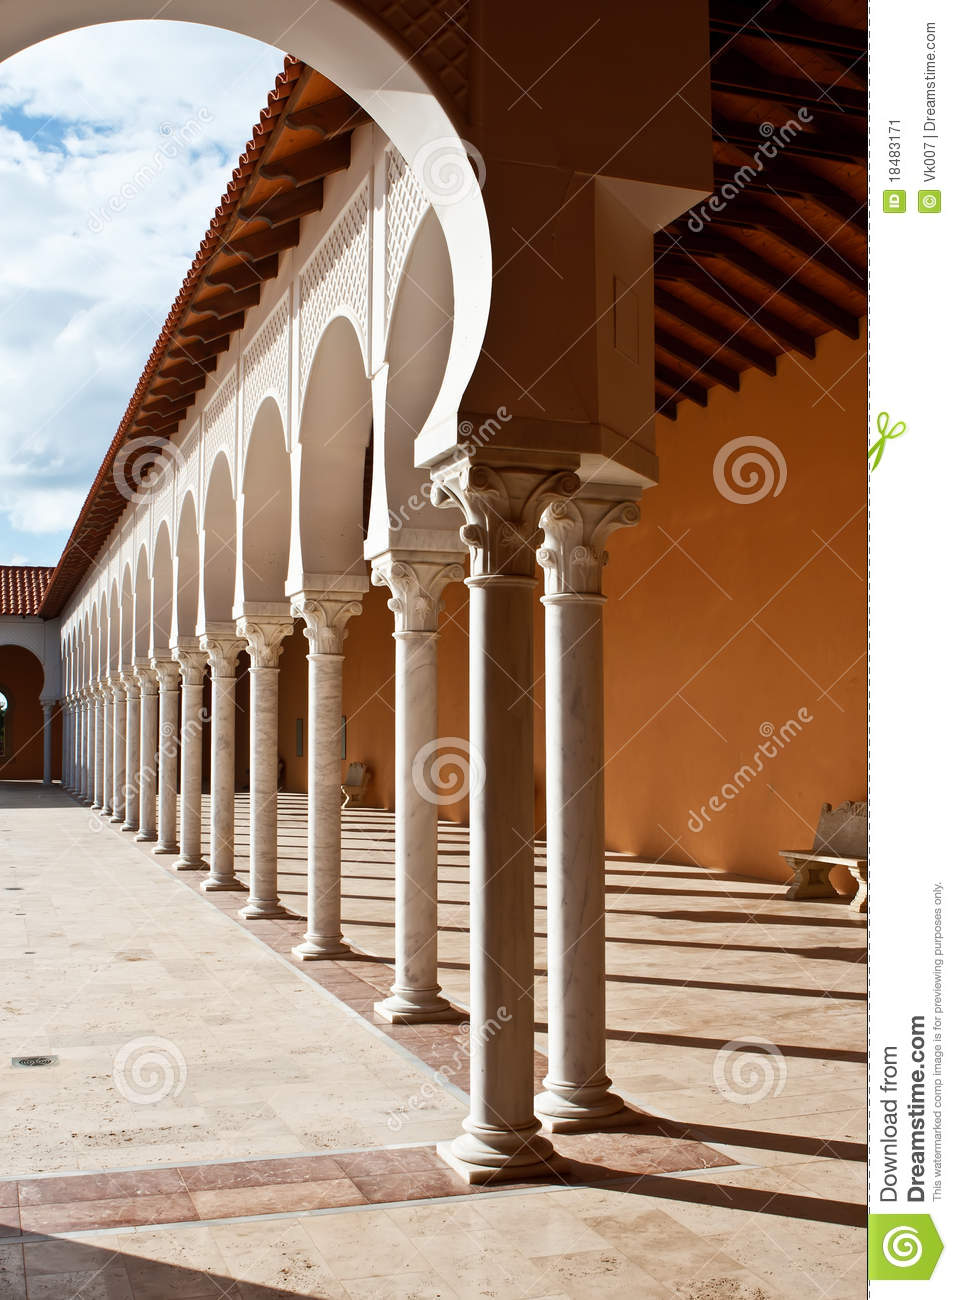 Download Patio In Spanish Style. Israel Stock Image   Image Of Design, Patio :